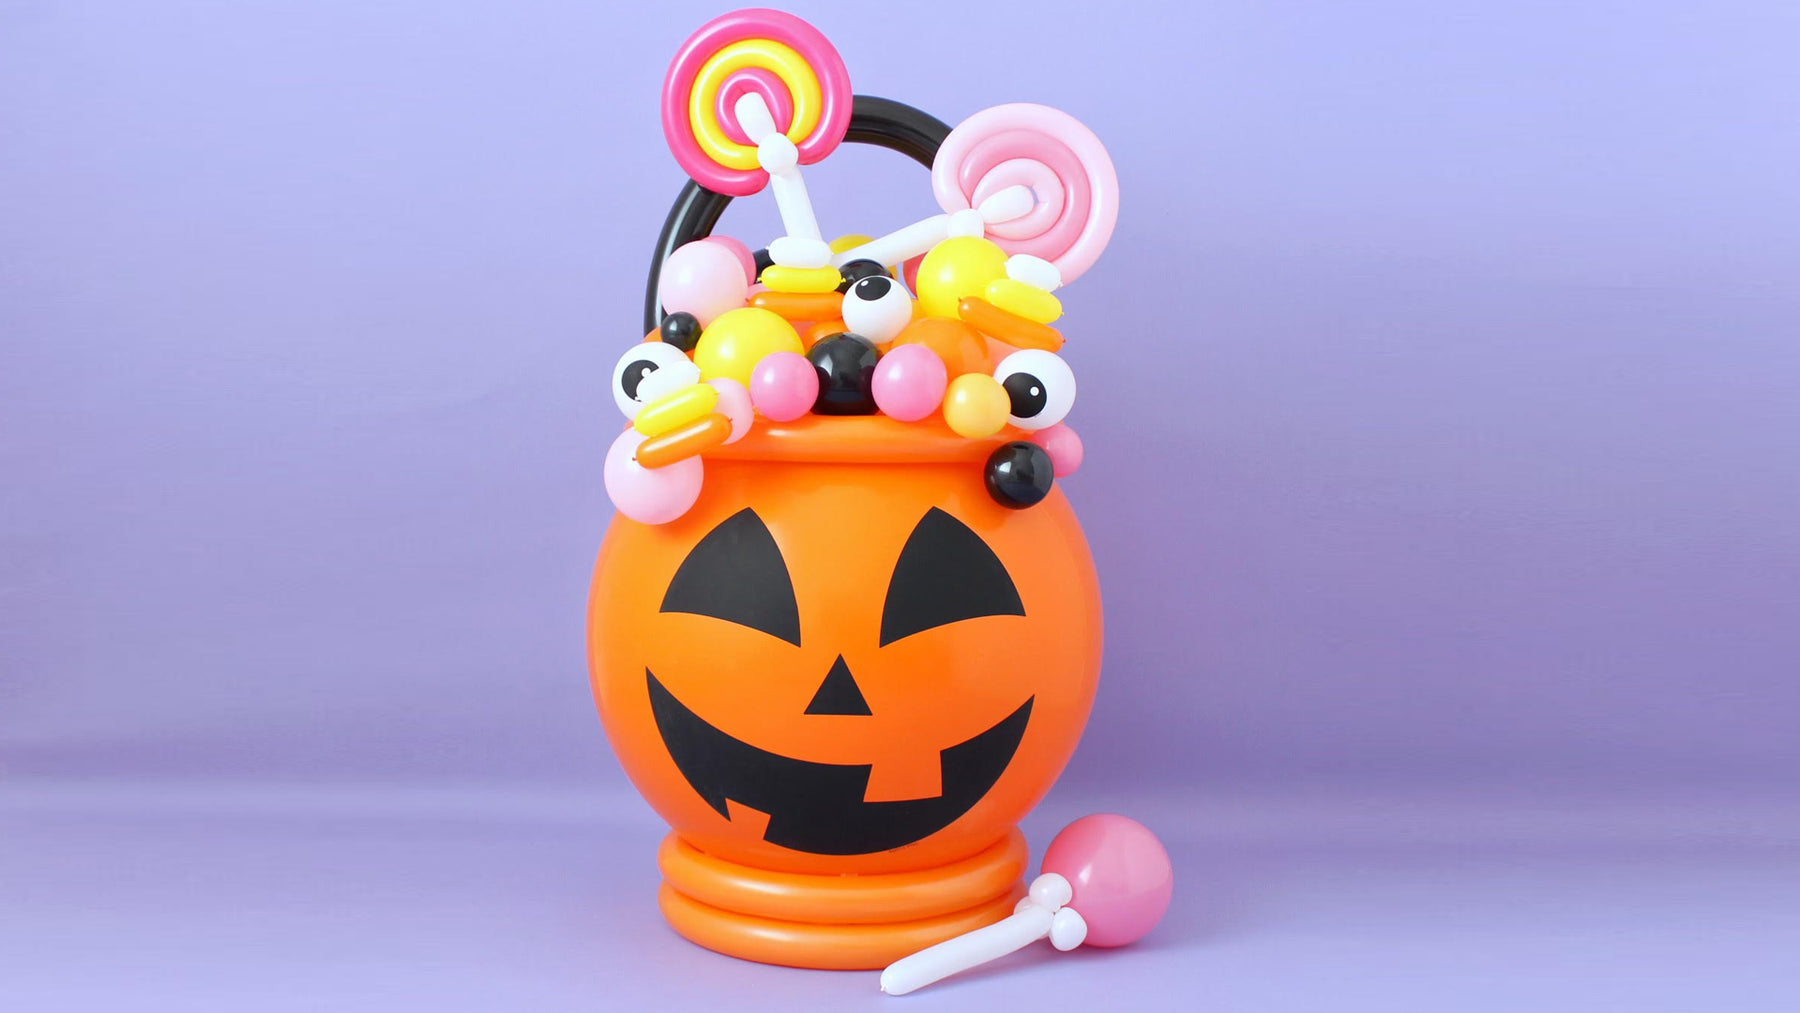 DIY Balloon Candy Cauldron